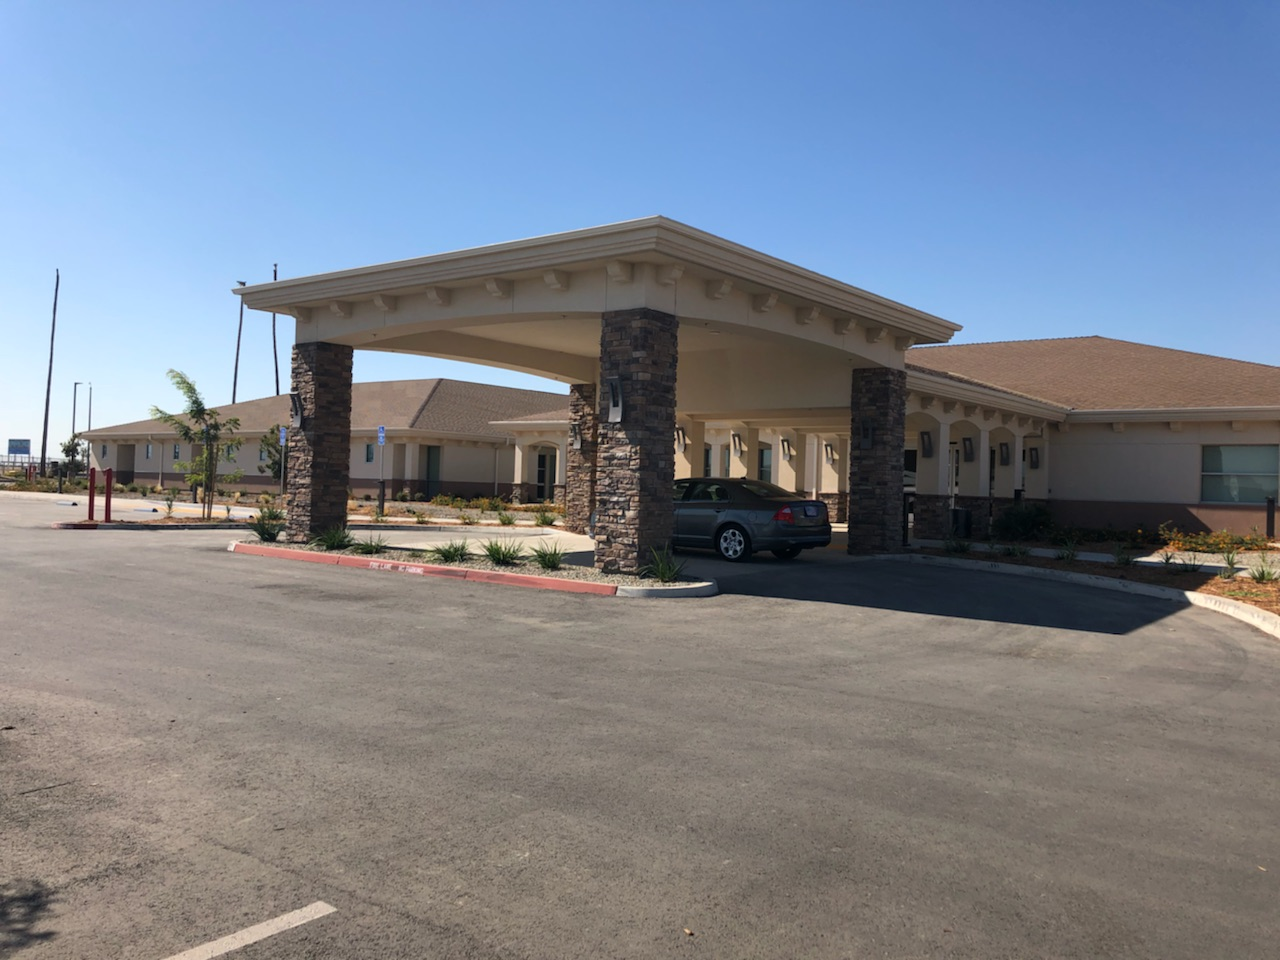 Kern River Transitional Care located in Bakersfield, CA